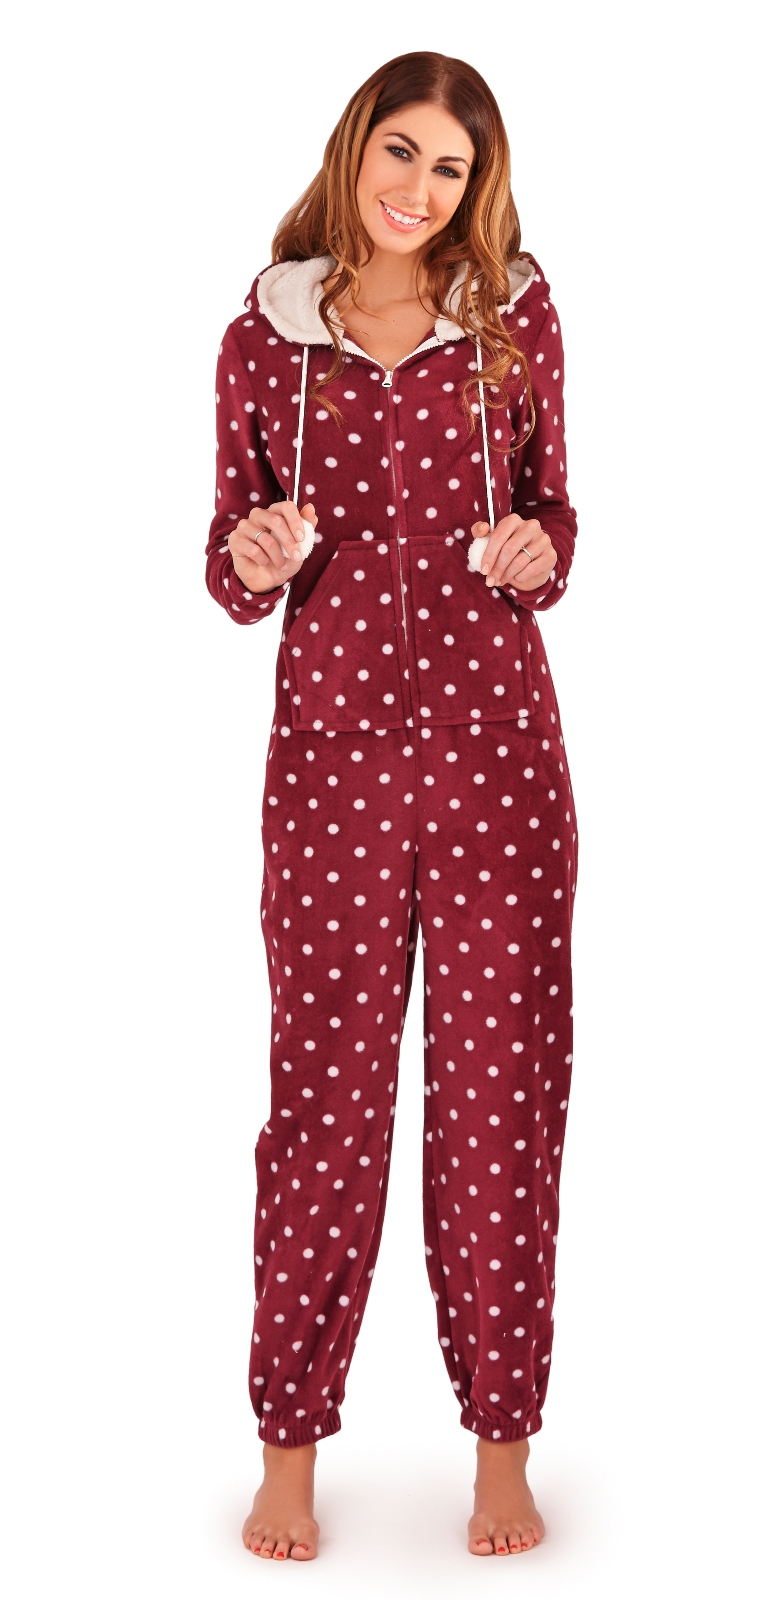 Innovative Womens Hooded Onesies All In Ones Jumpsuits Pyjamas Ladies Girls Size UK 6 - 16 | EBay